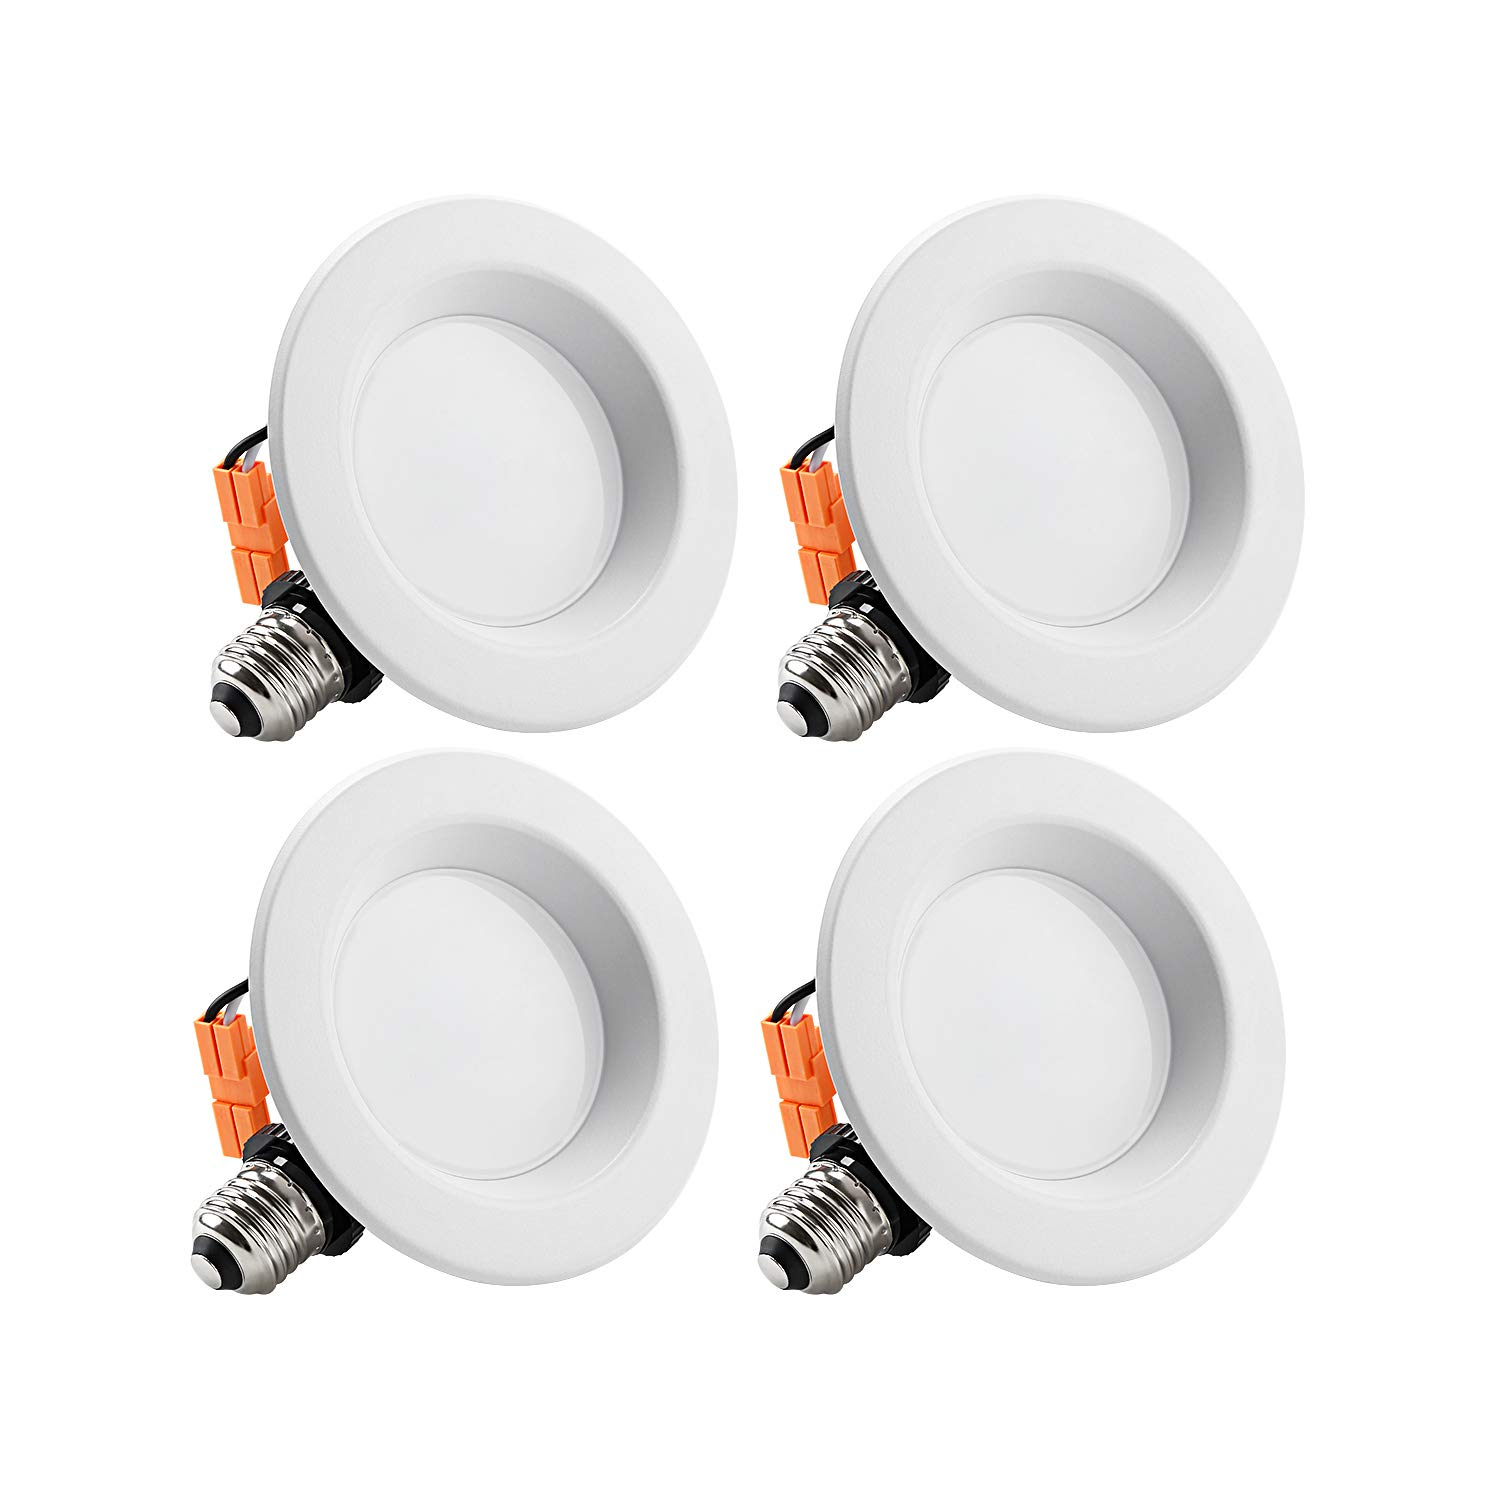 TORCHSTAR 4-Inch Dimmable Recessed LED Downlight with Smooth Trim, 10W (65W Eqv.), CRI 90, ETL, 2700K Soft White, 700lm, Retrofit Lighting Fixture, 5 Years Warranty,Pack of 4